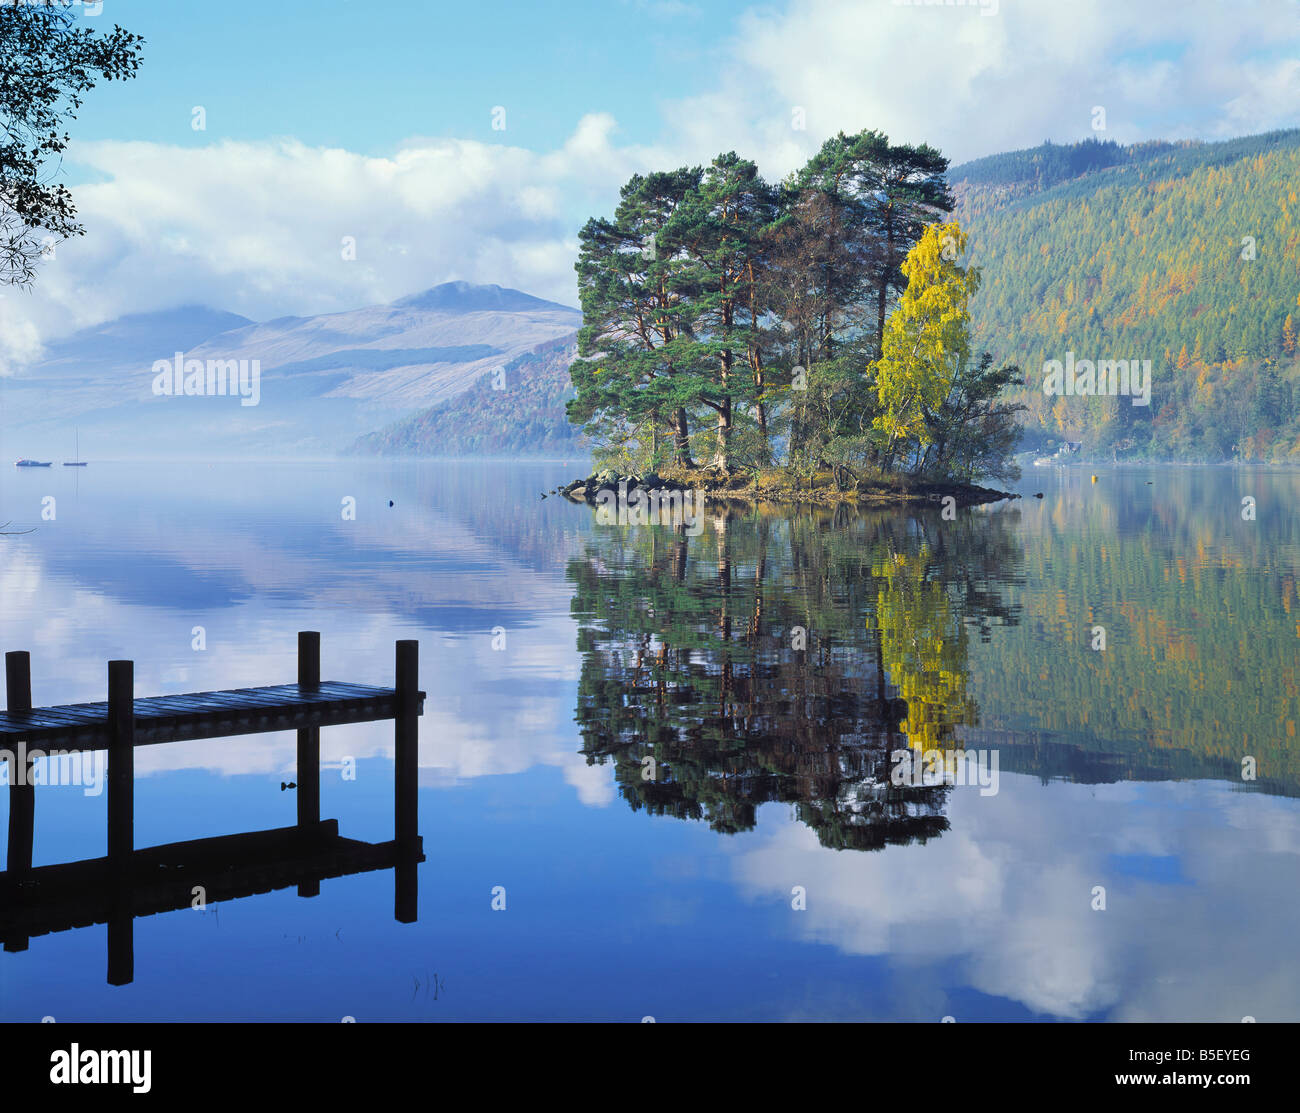 Go ECOSSE PERTH KINROSS LOCH TAY À KENMORE Photo Stock